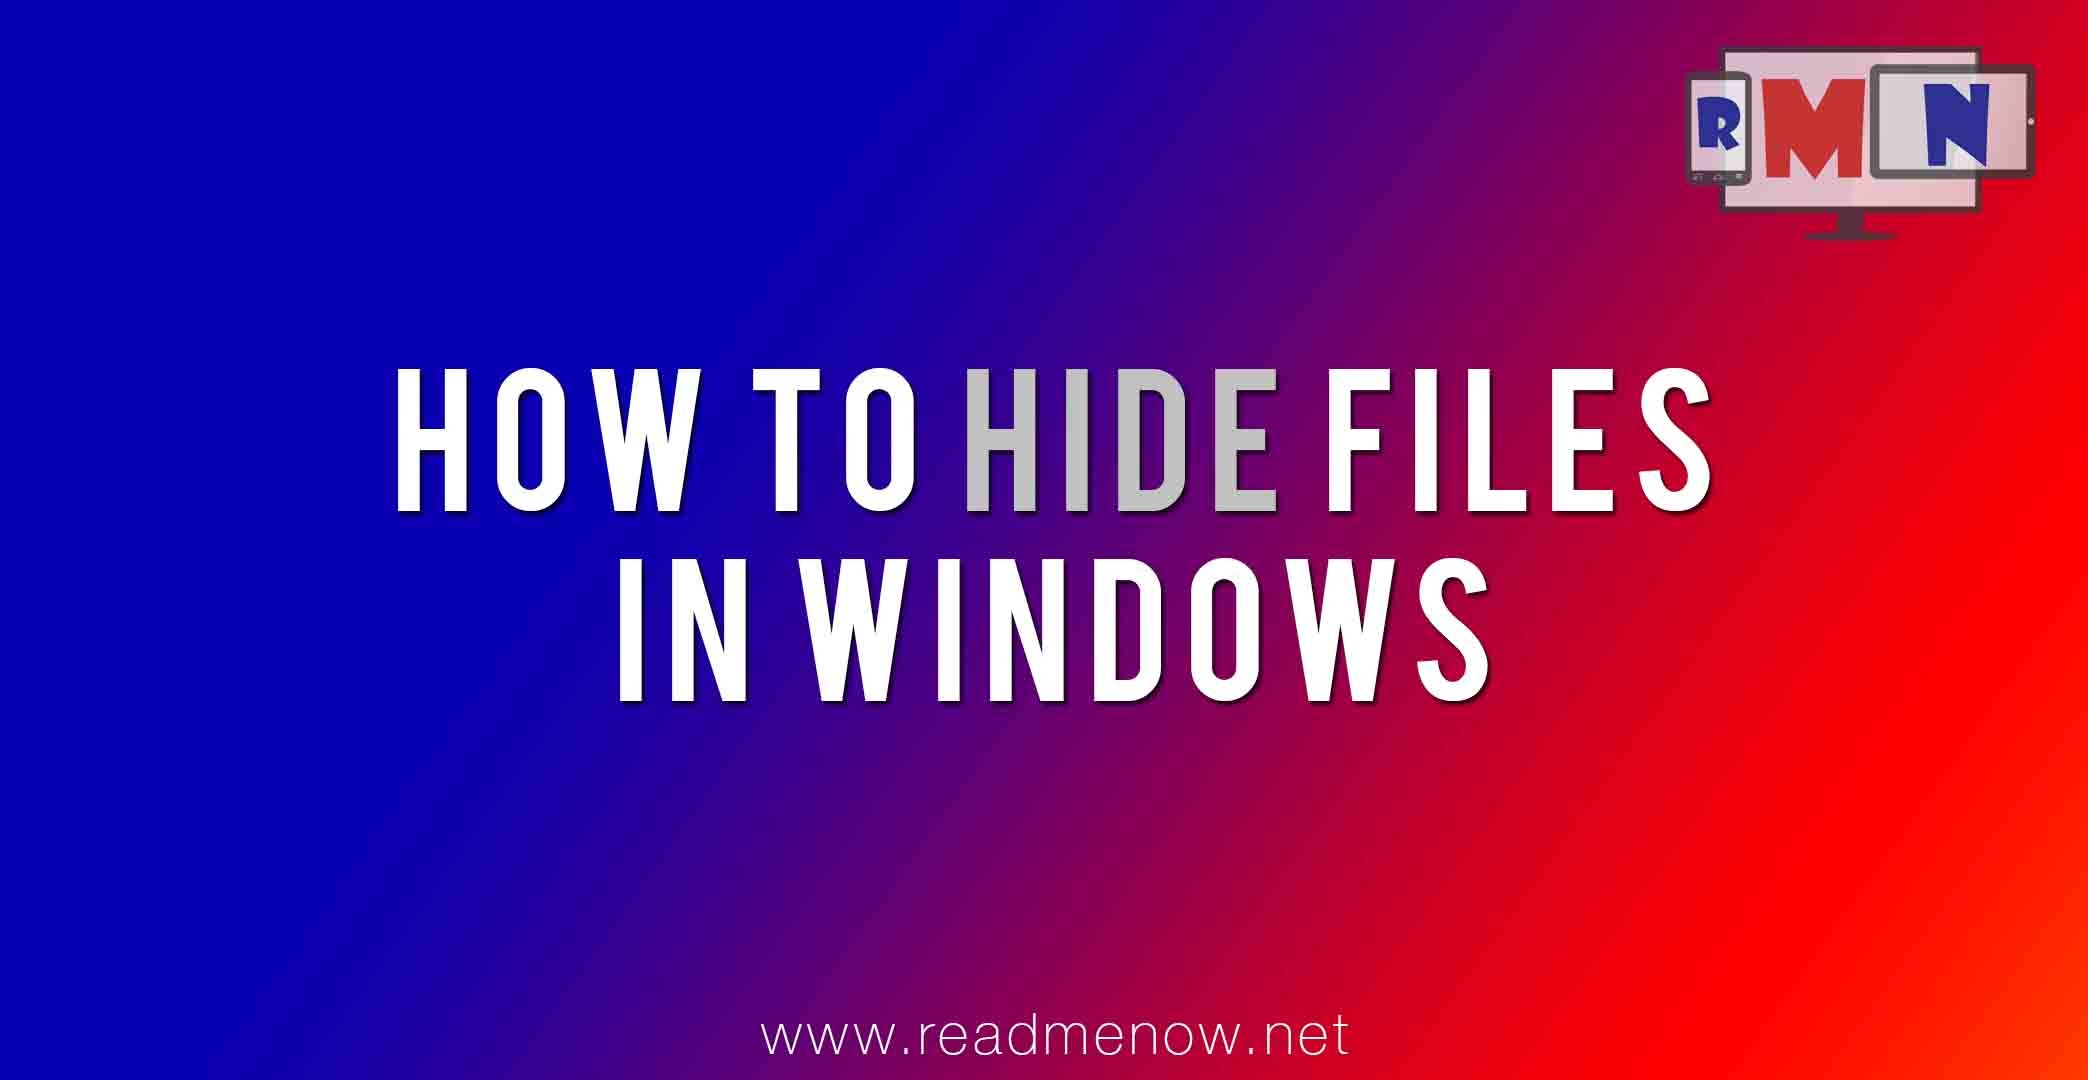 Hide files in Windows using different methods